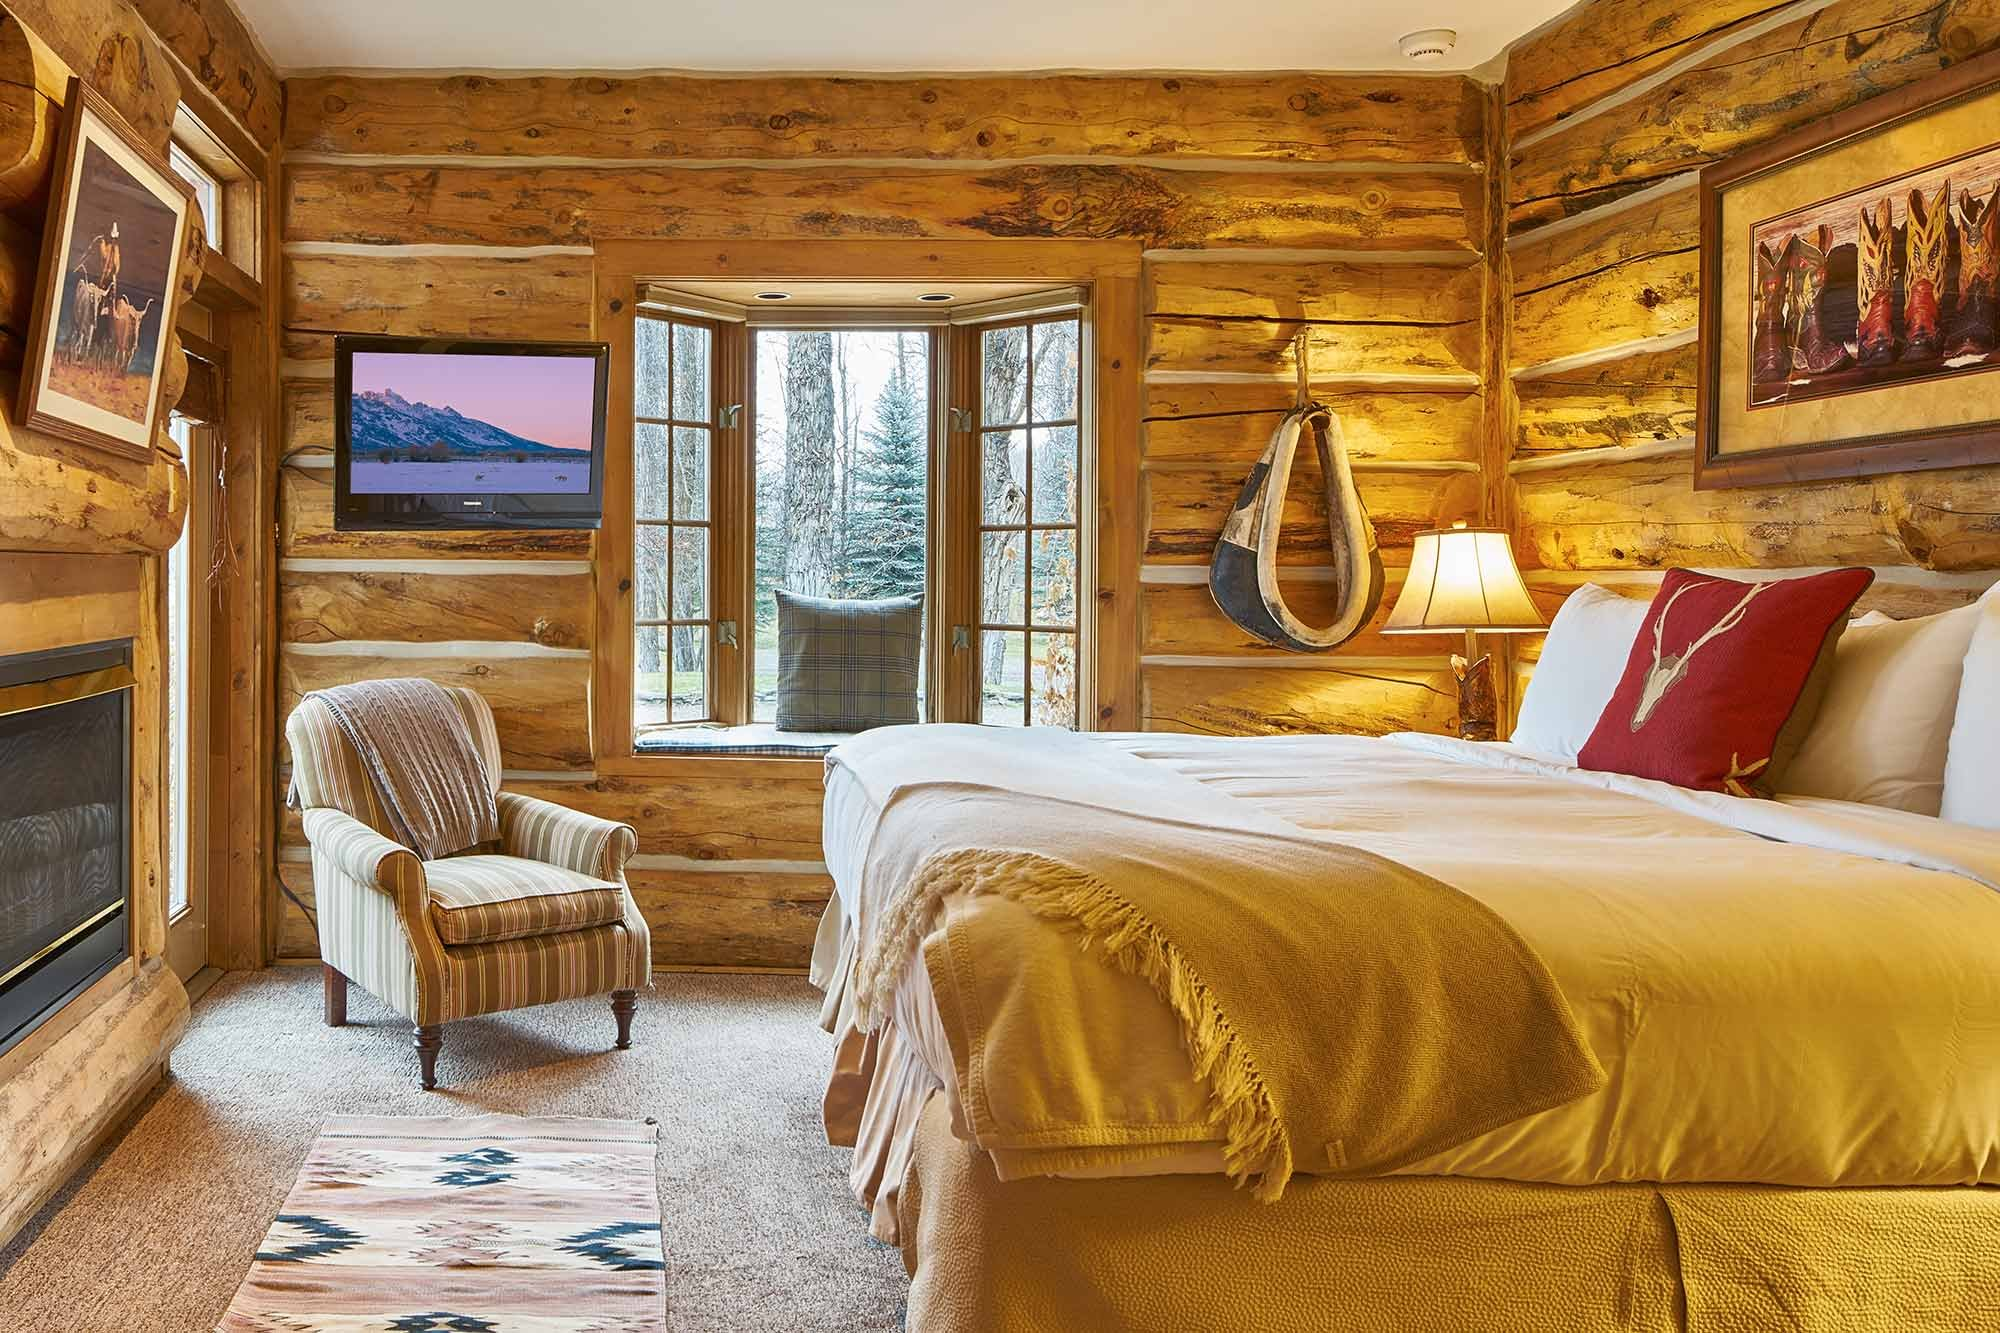 View of rustic room and bed